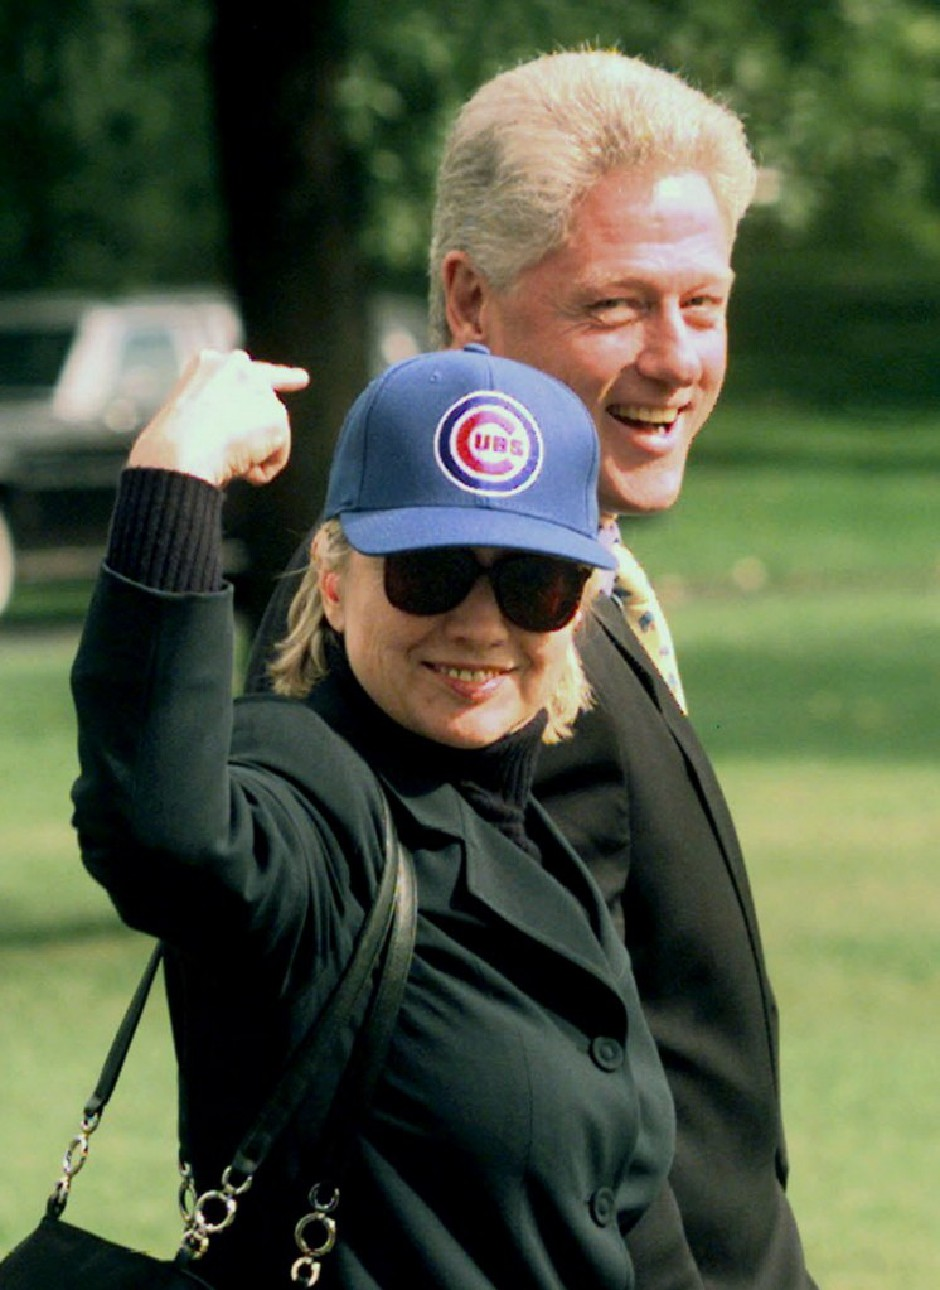 Hillary rooting for her hometown team